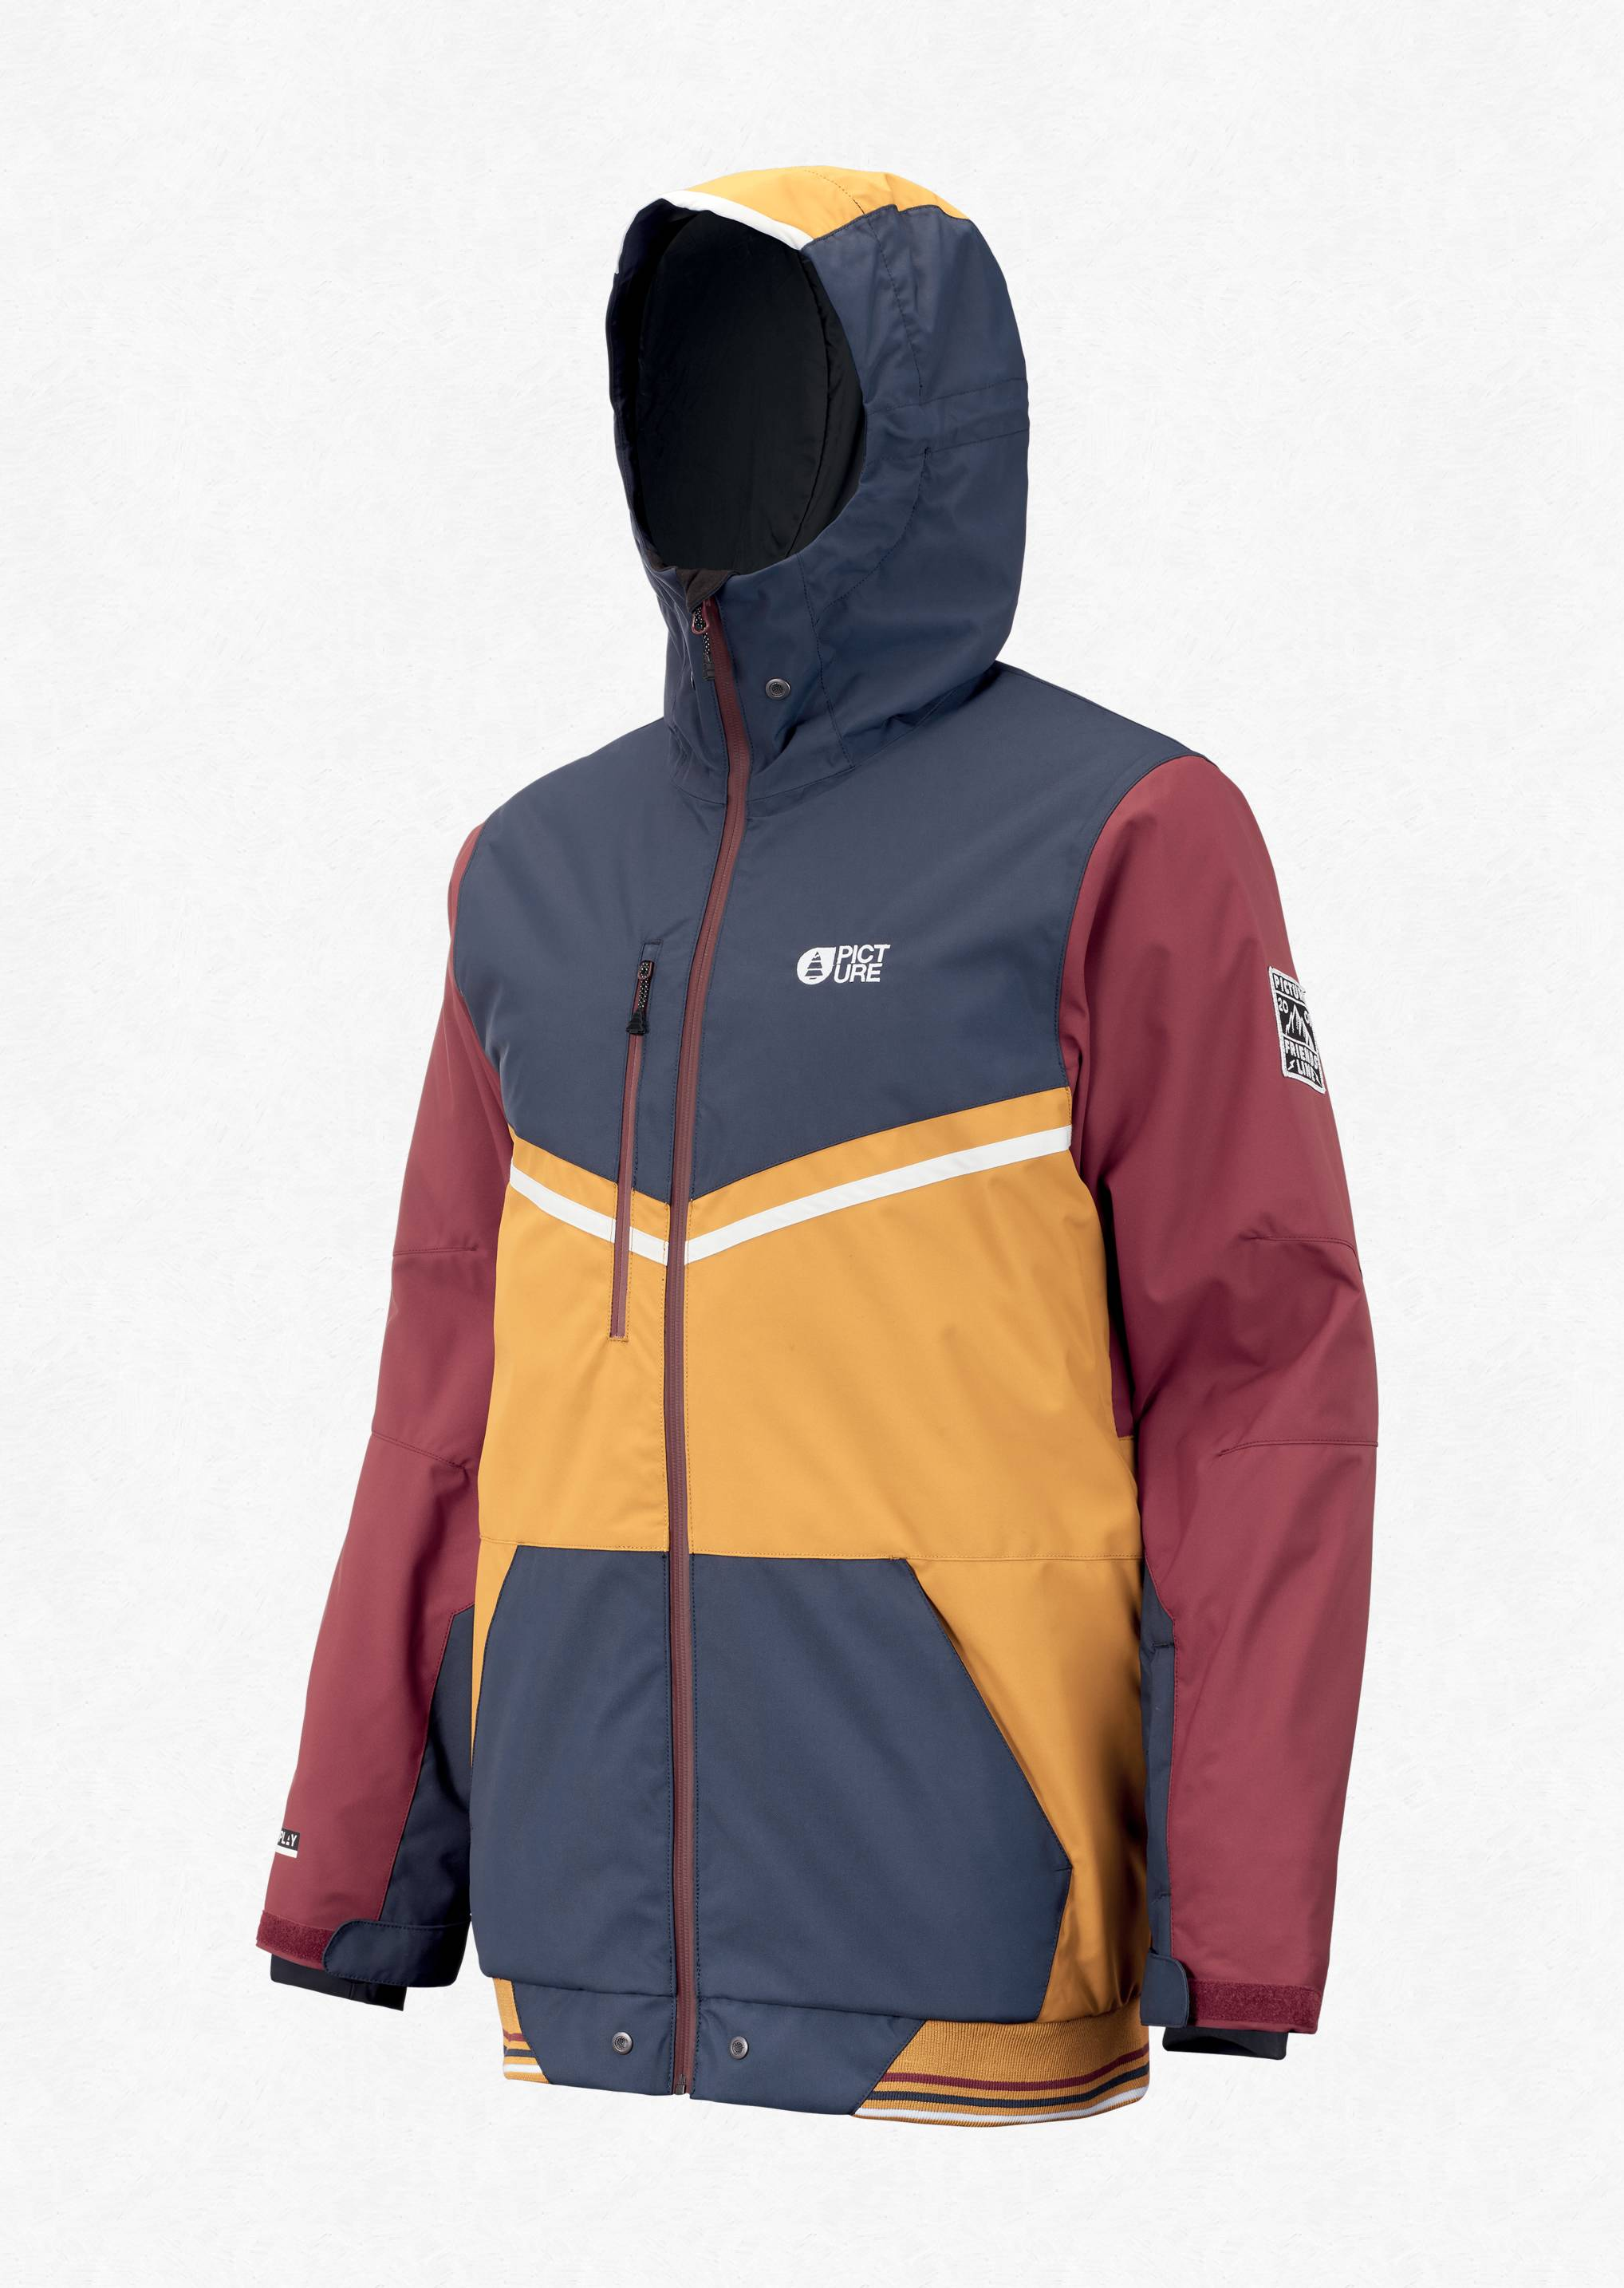 Picture M Panel Jacket 2021